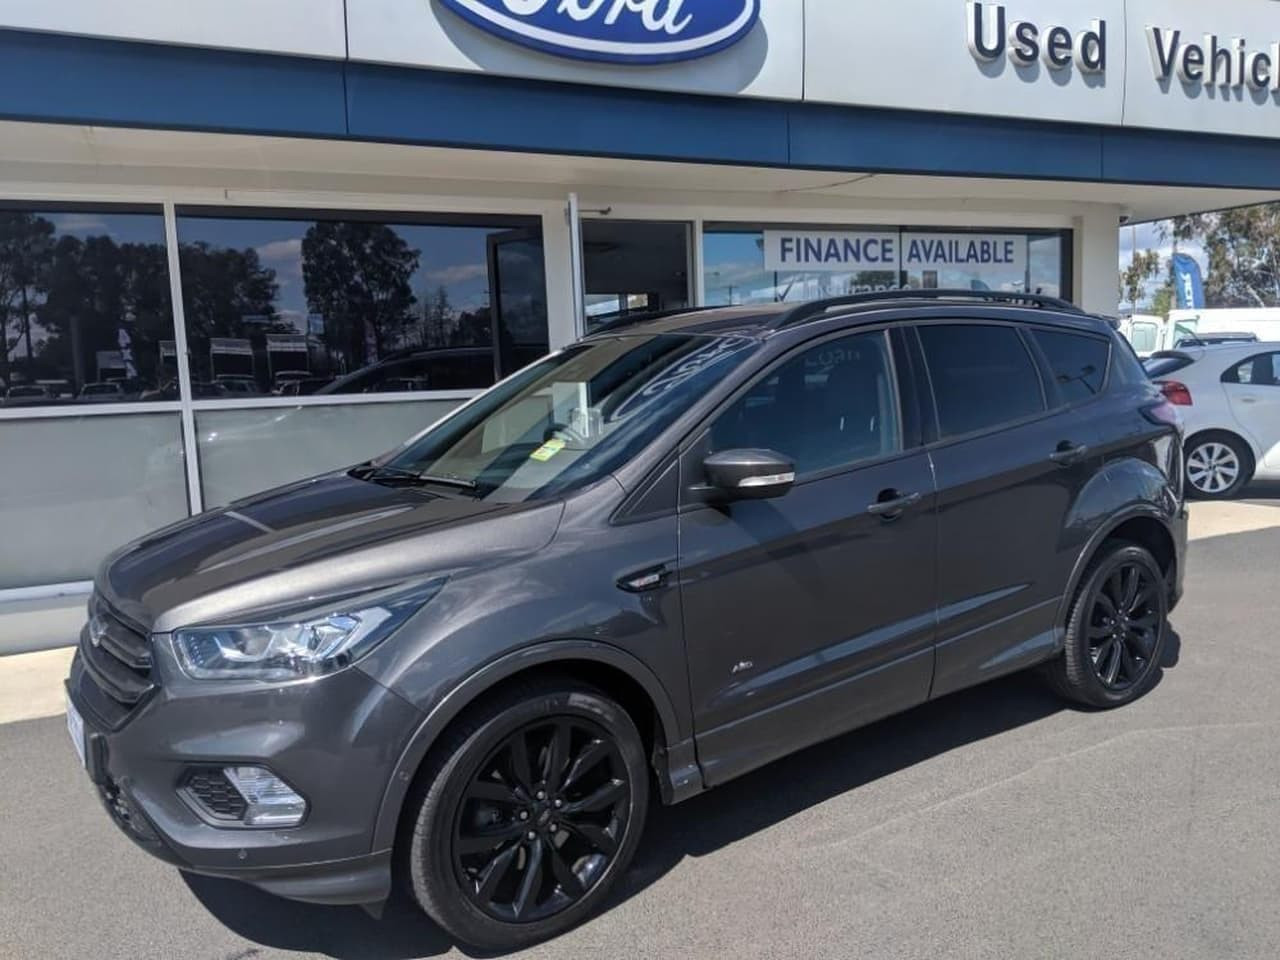 2018 MY19.25 Ford Escape ZG 2019.25MY ST-LINE Suv